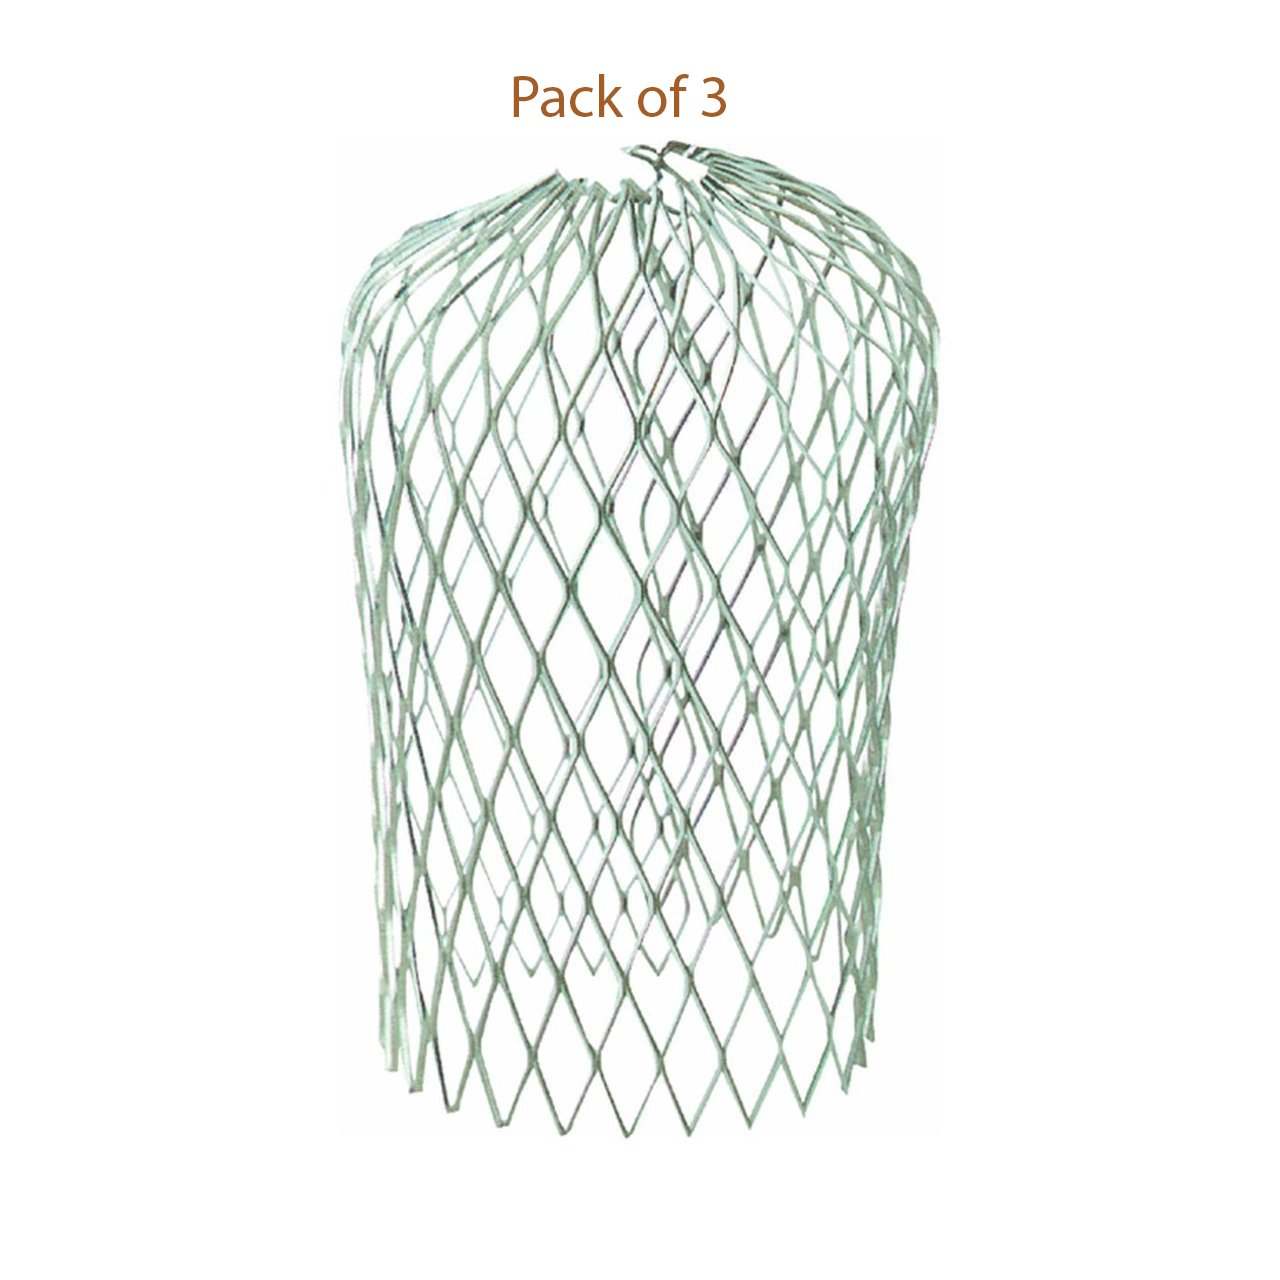 Amerimax Home Products 21059 3 inch Expand Aluminum Strainer Pack of 3